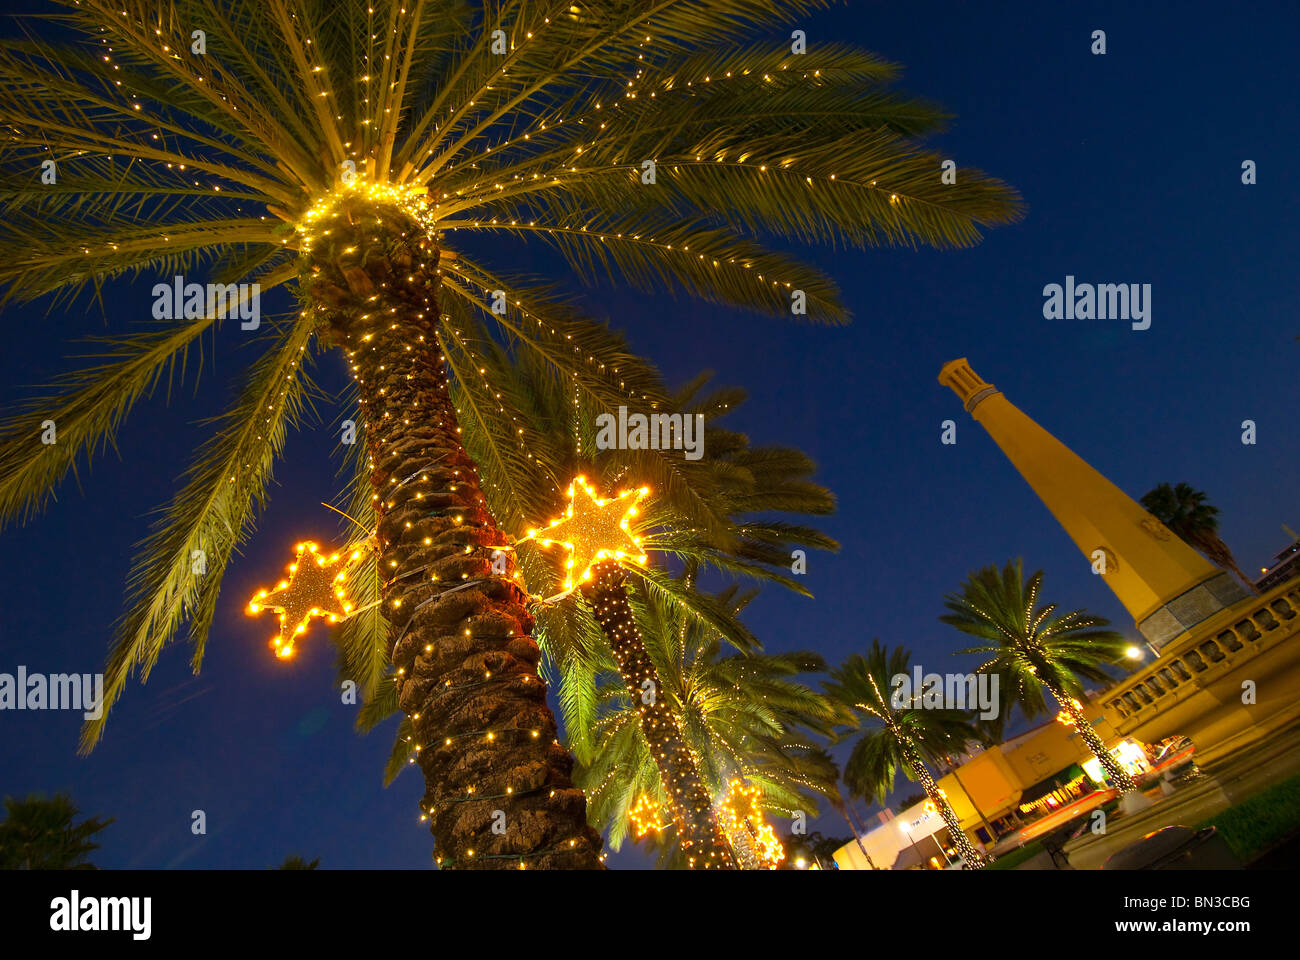 palm trees decorated with christmas lights in the normandy isle neighborhood in miami beach florida - Palm Tree Decorated For Christmas